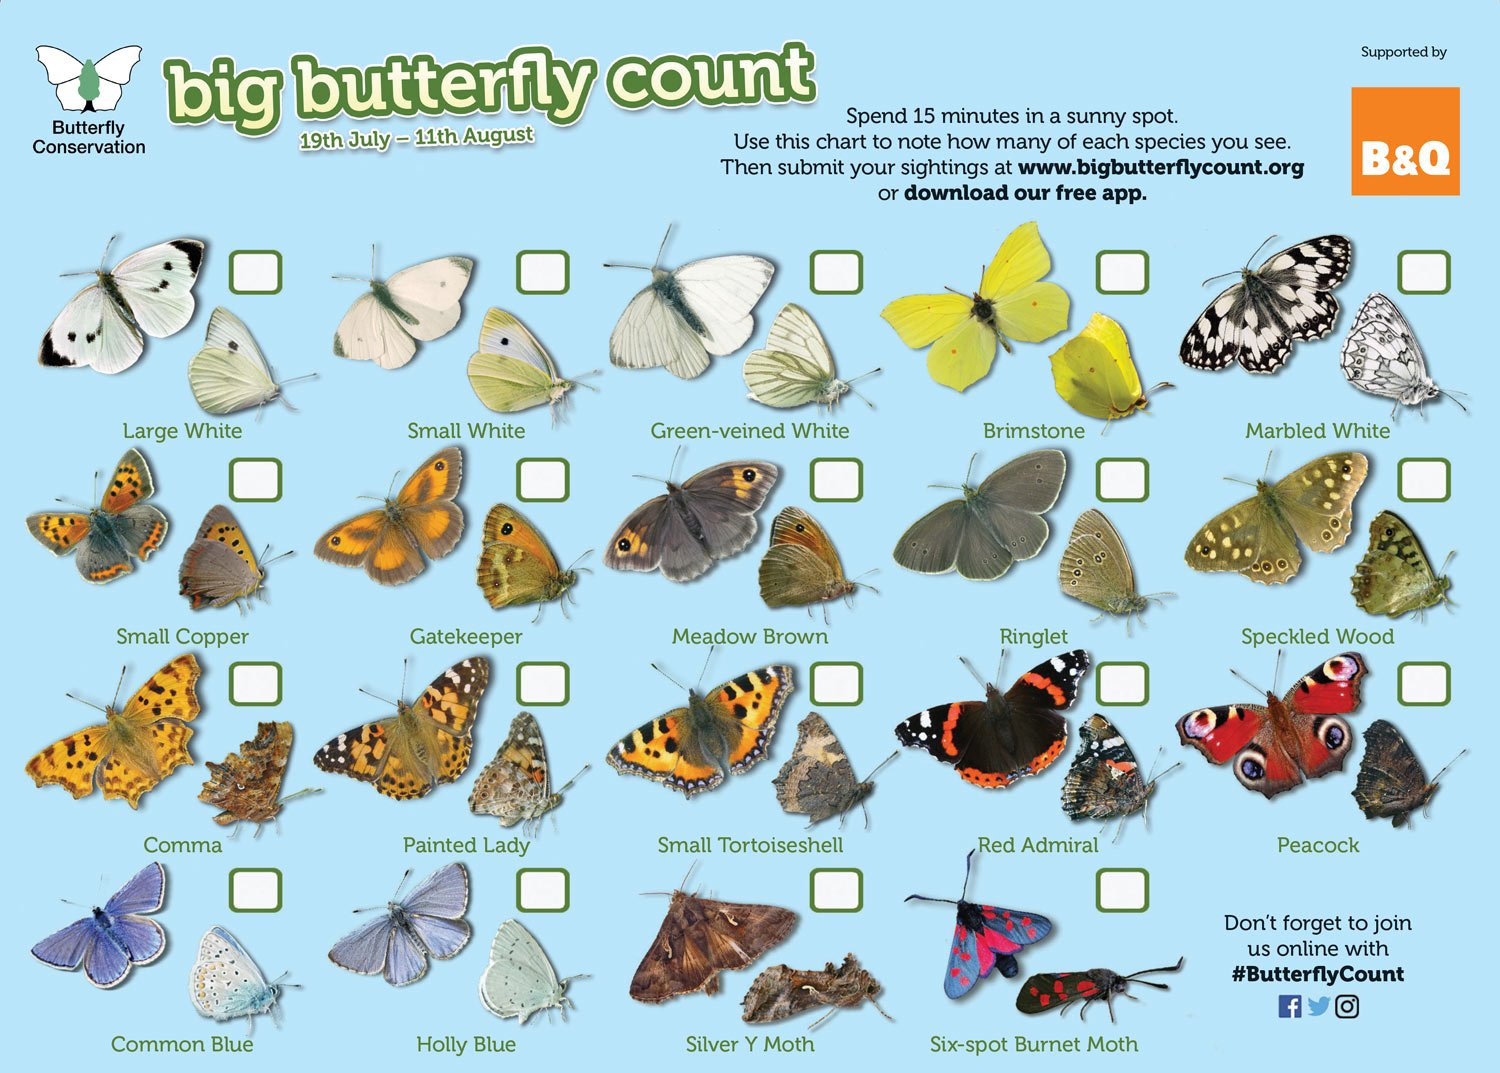 Can you help our friends @savebutterflies? It's the #BigButterflyCount with @ChrisGPackham starting on July 19th. Let them know what butterflies you see in your garden! ~ Cat https://t.co/2T6PusFw4k